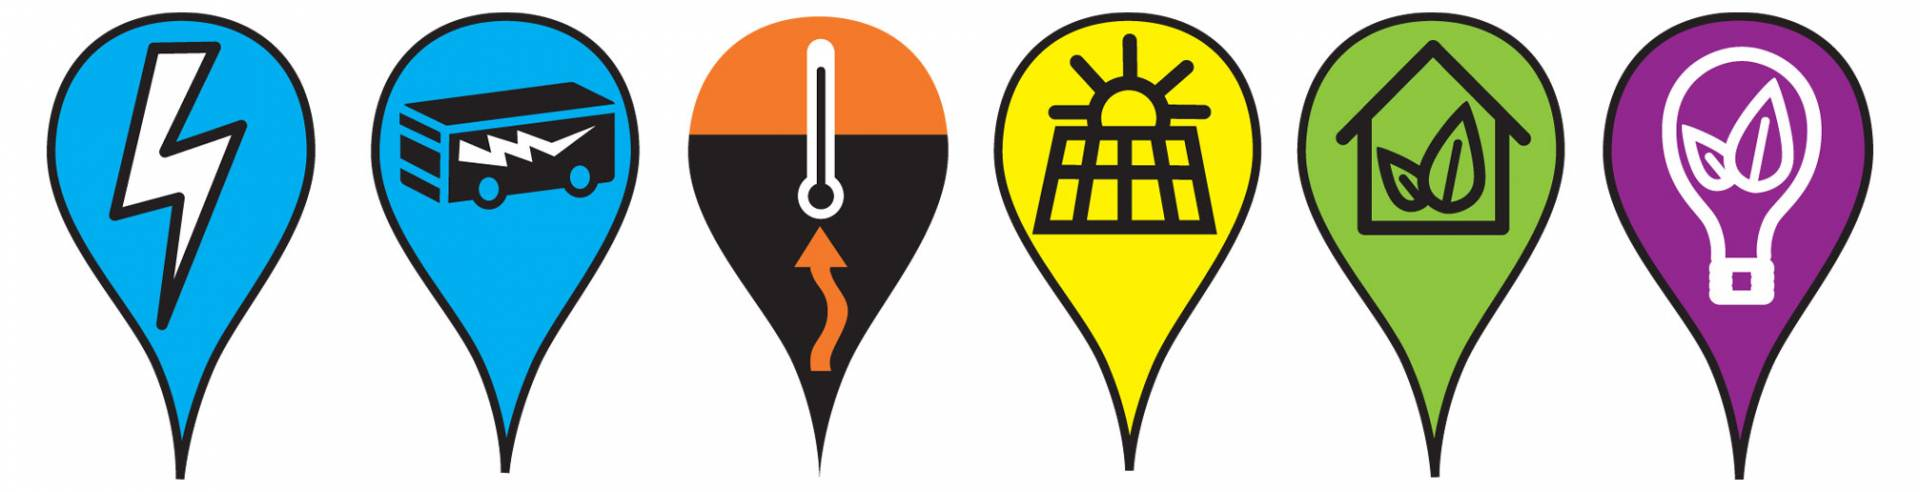 Mapmarkers with lightning, an electrified bus, a thermometer, solar panel, a house with leaves, a light bulb with a leaf inside